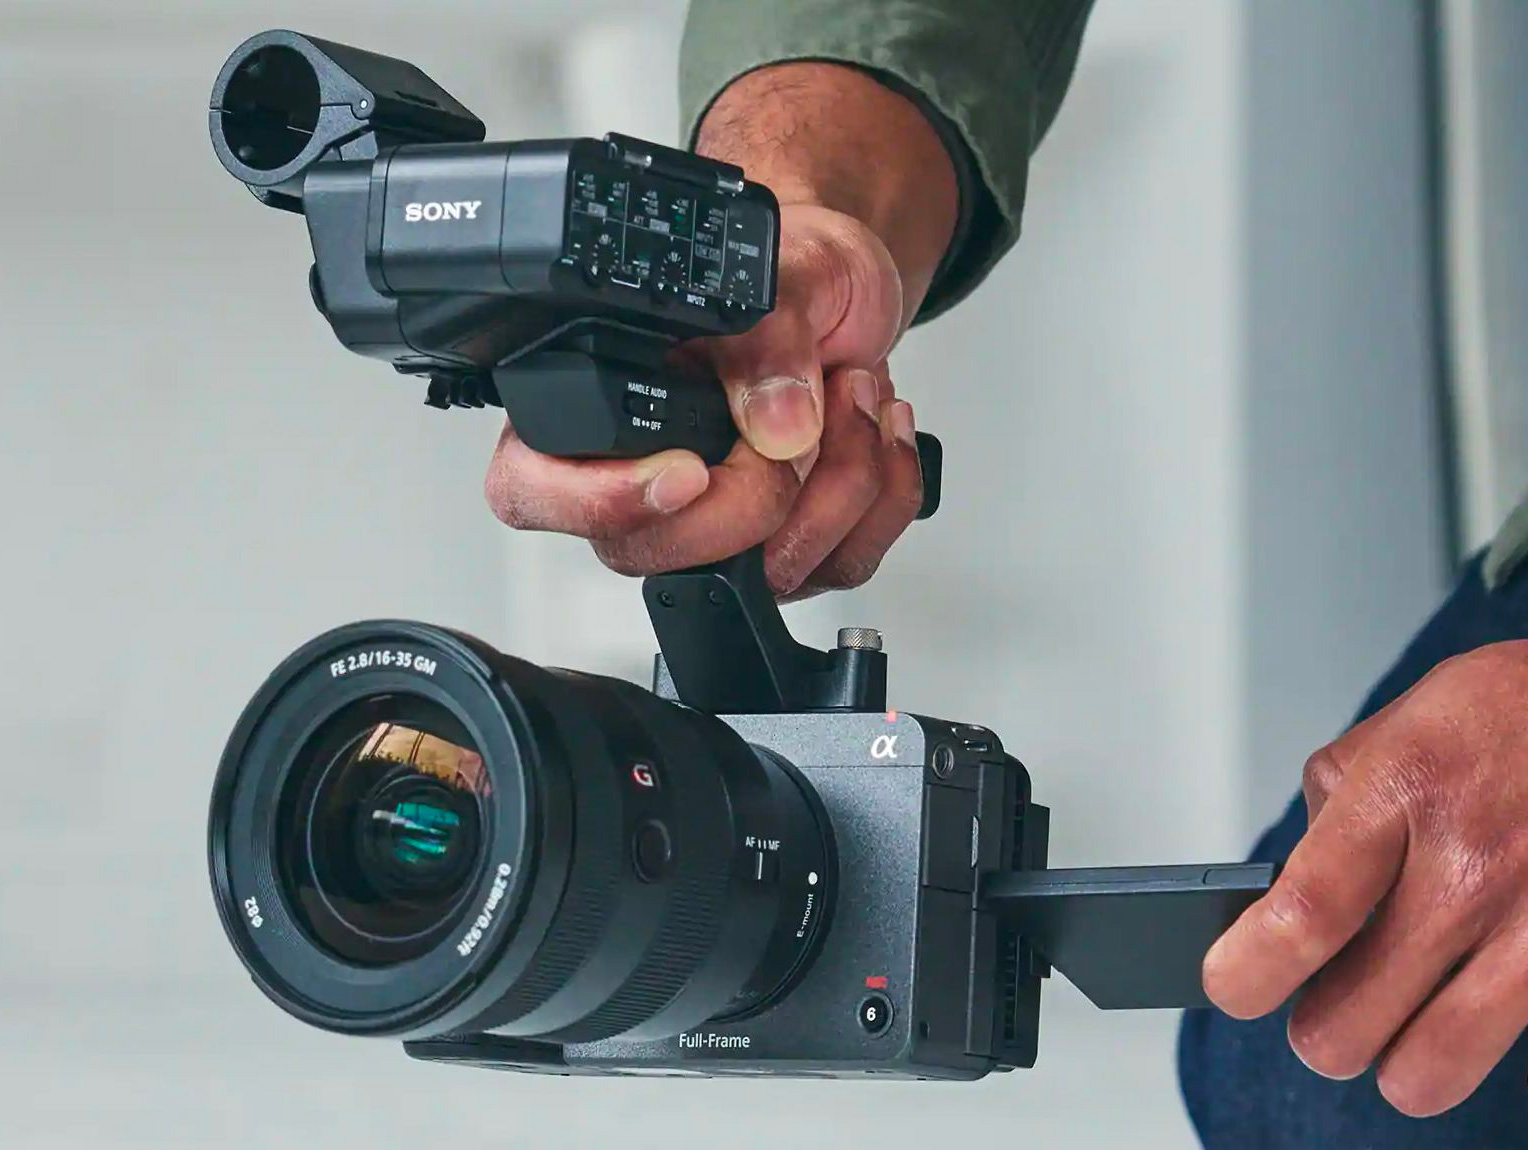 Sony Introduces FX3 Compact Cinema Camera at werd.com